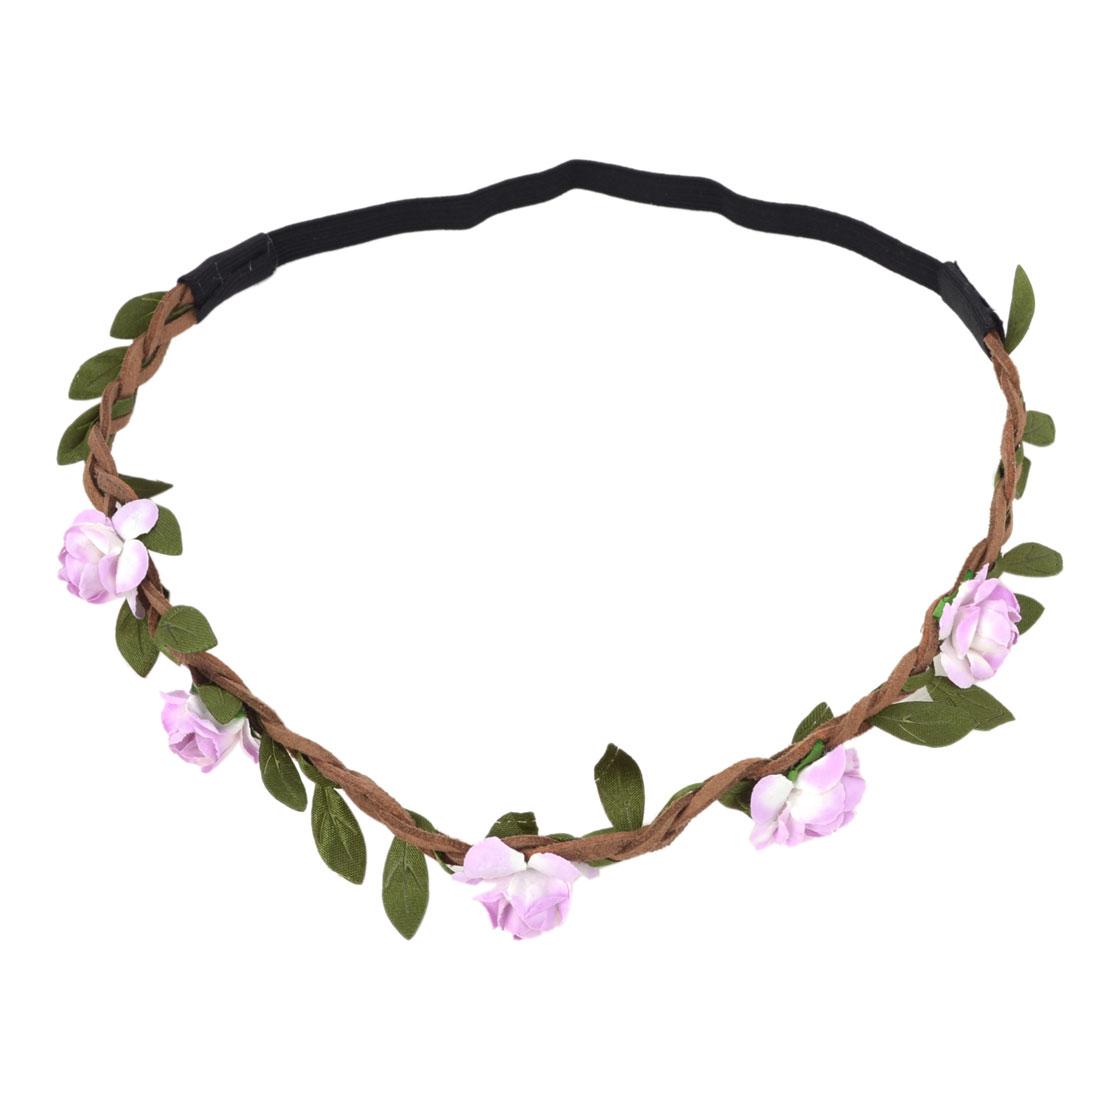 Ladies Hairstyle White Purple Flowers Accent Stretch Braided Hairwear Headband